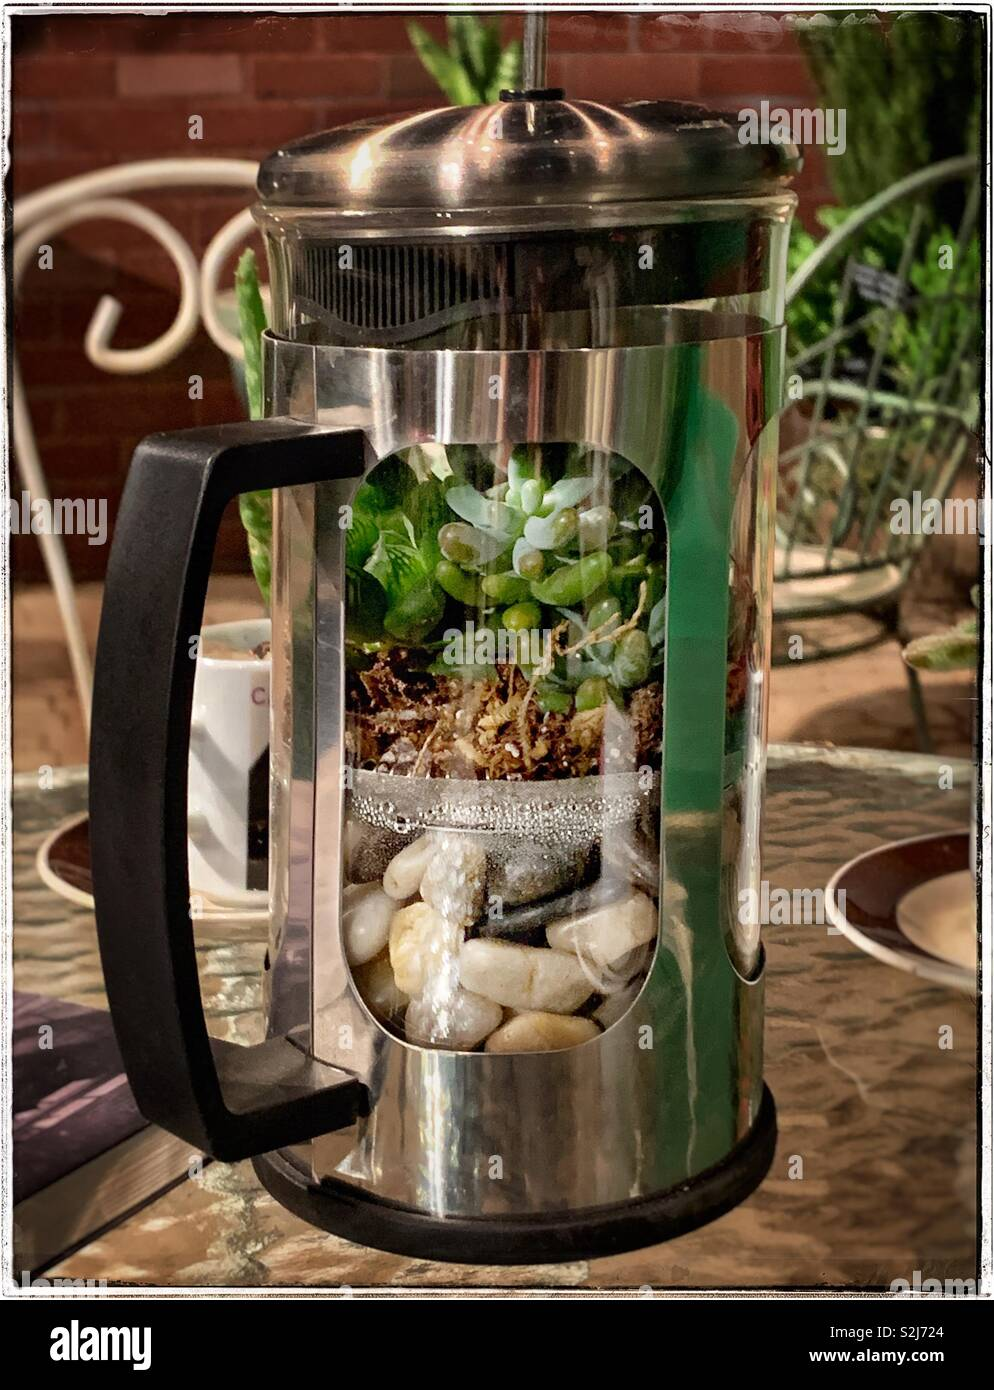 Terrarium With Rocks And Jade Plants Inside A French Press Coffee Maker Stock Photo Alamy